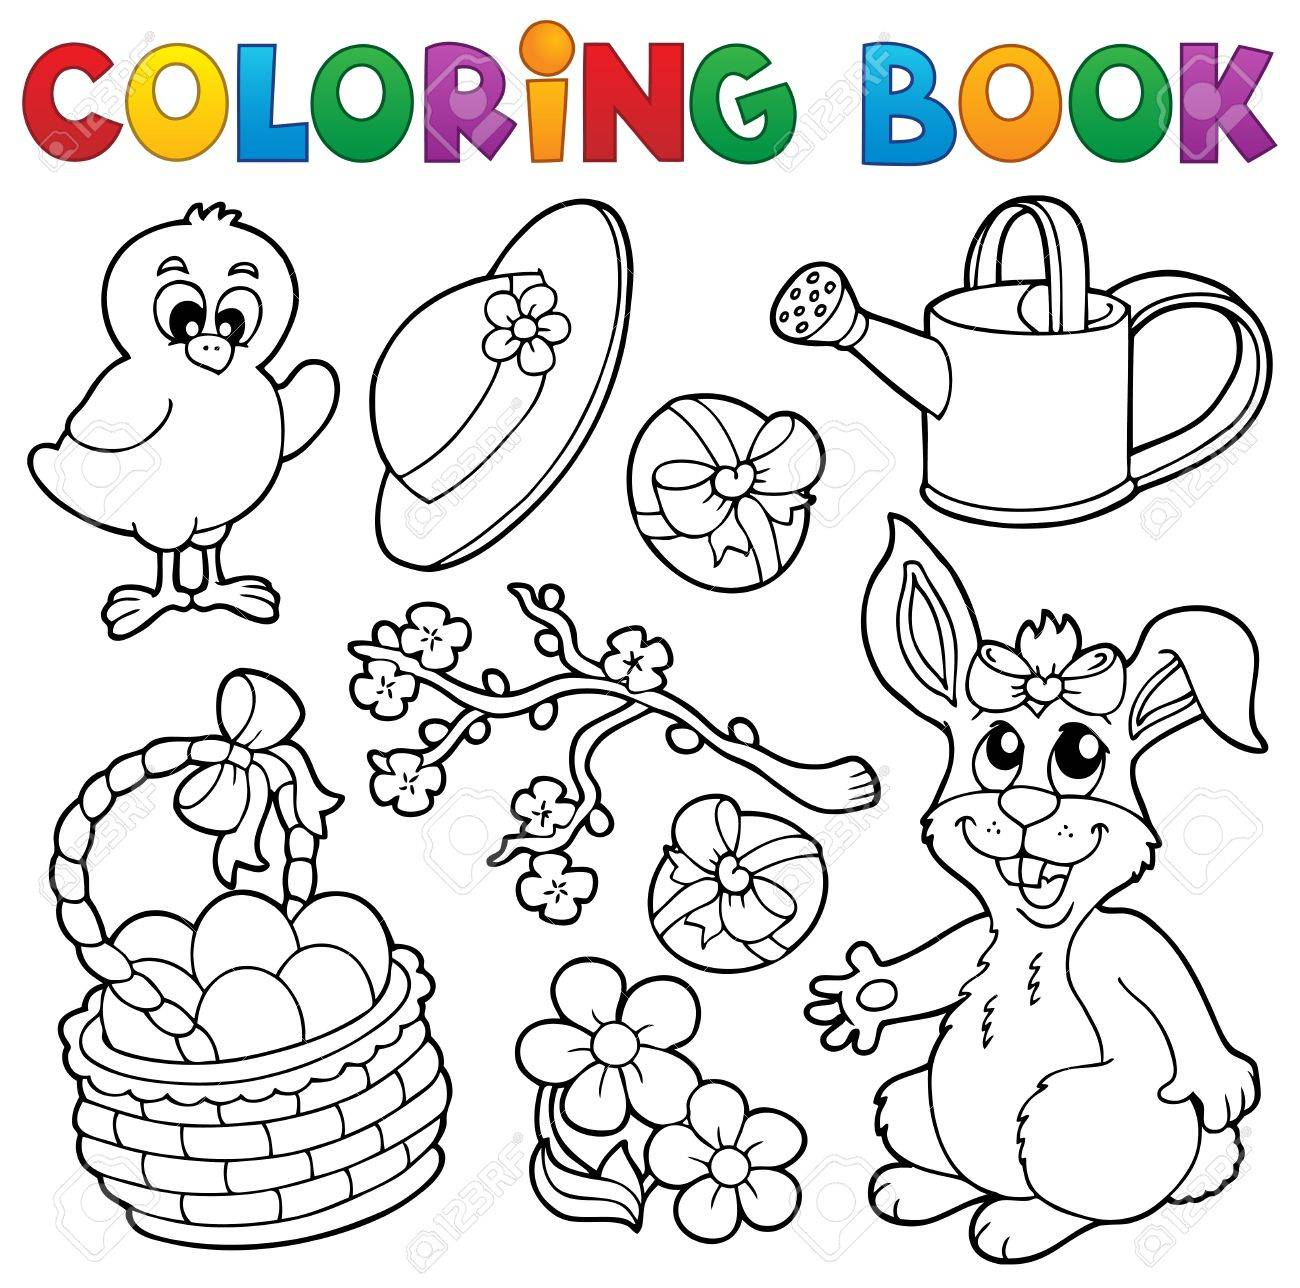 Coloring book with Easter theme 6 - vector illustration Stock Vector - 17368268